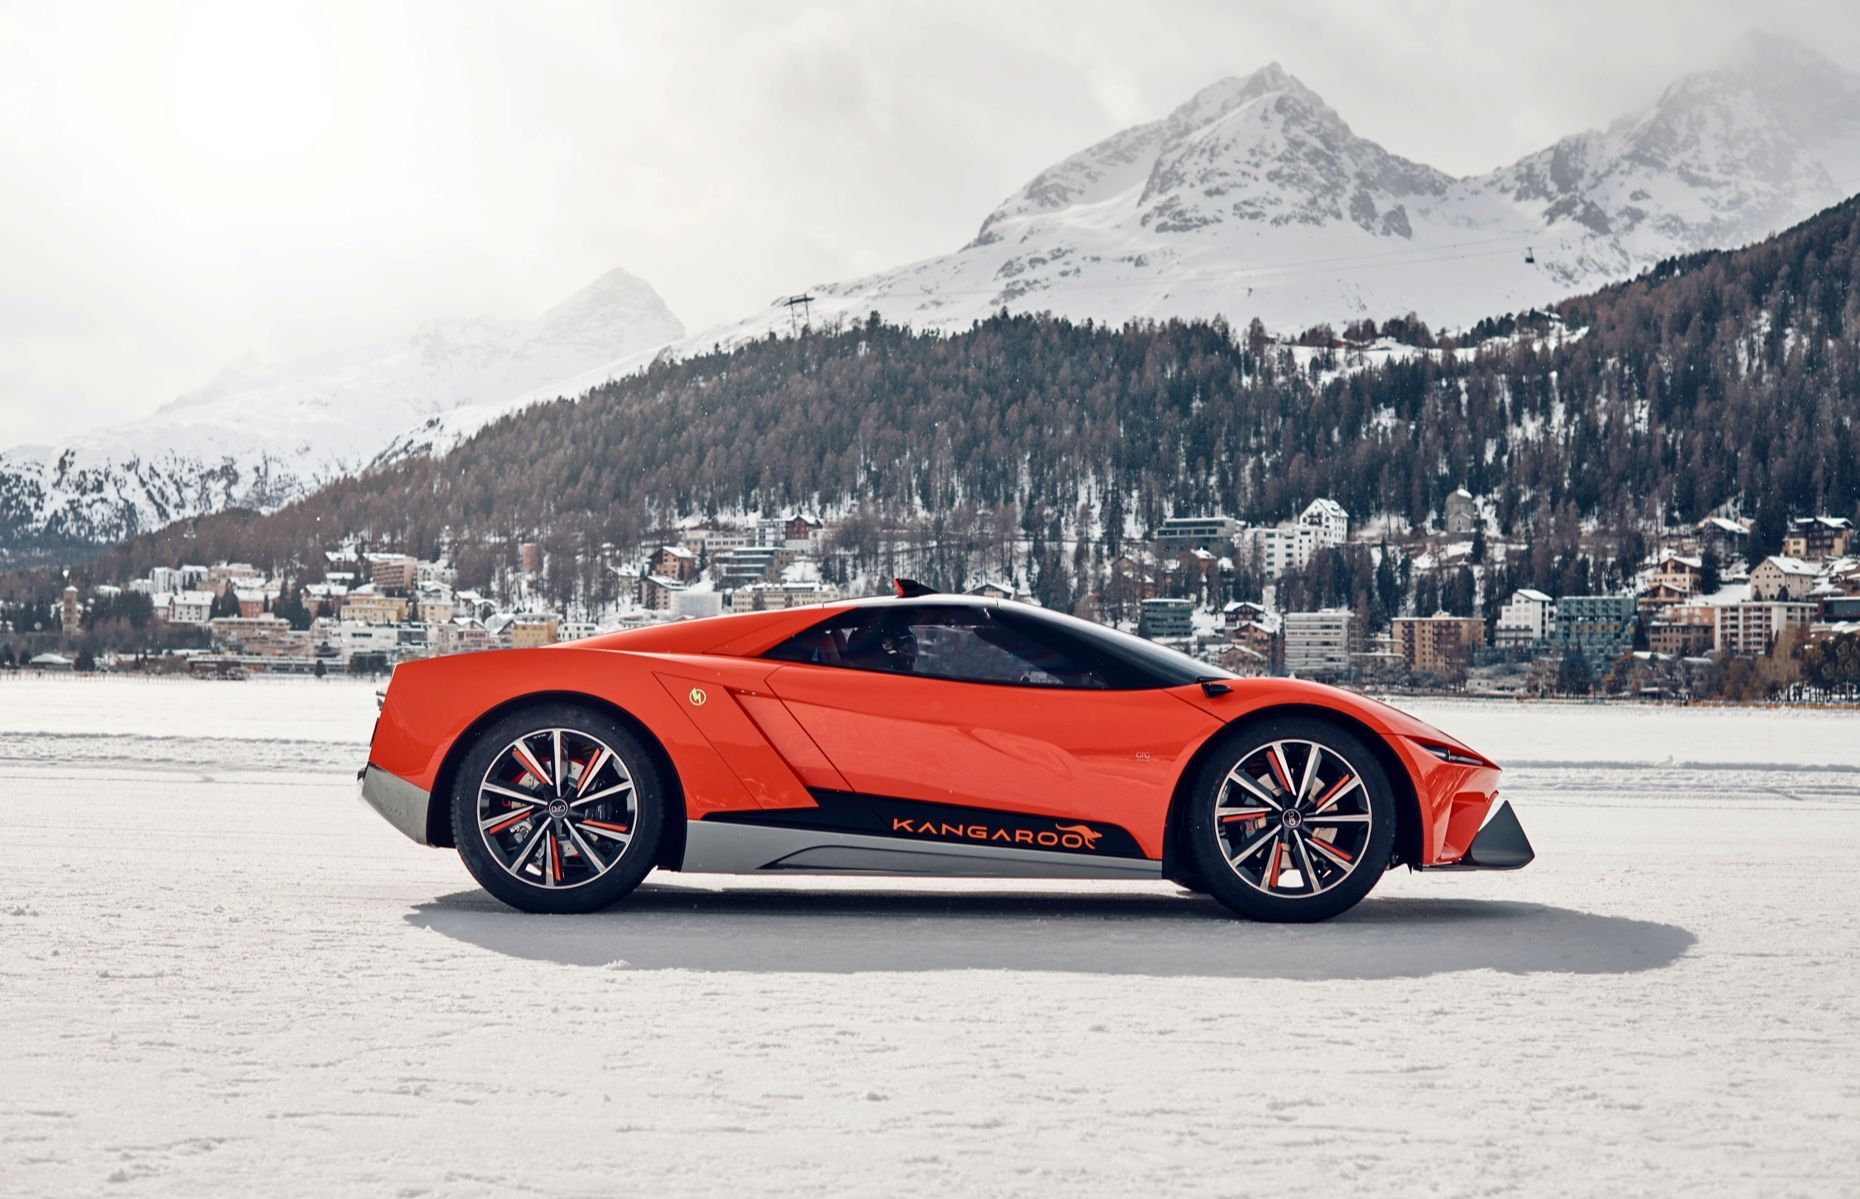 The Gfg Style Kangaroo Is A Lifted And Gifted Electric Hyper Suv Super Cars Suv Geneva Motor Show